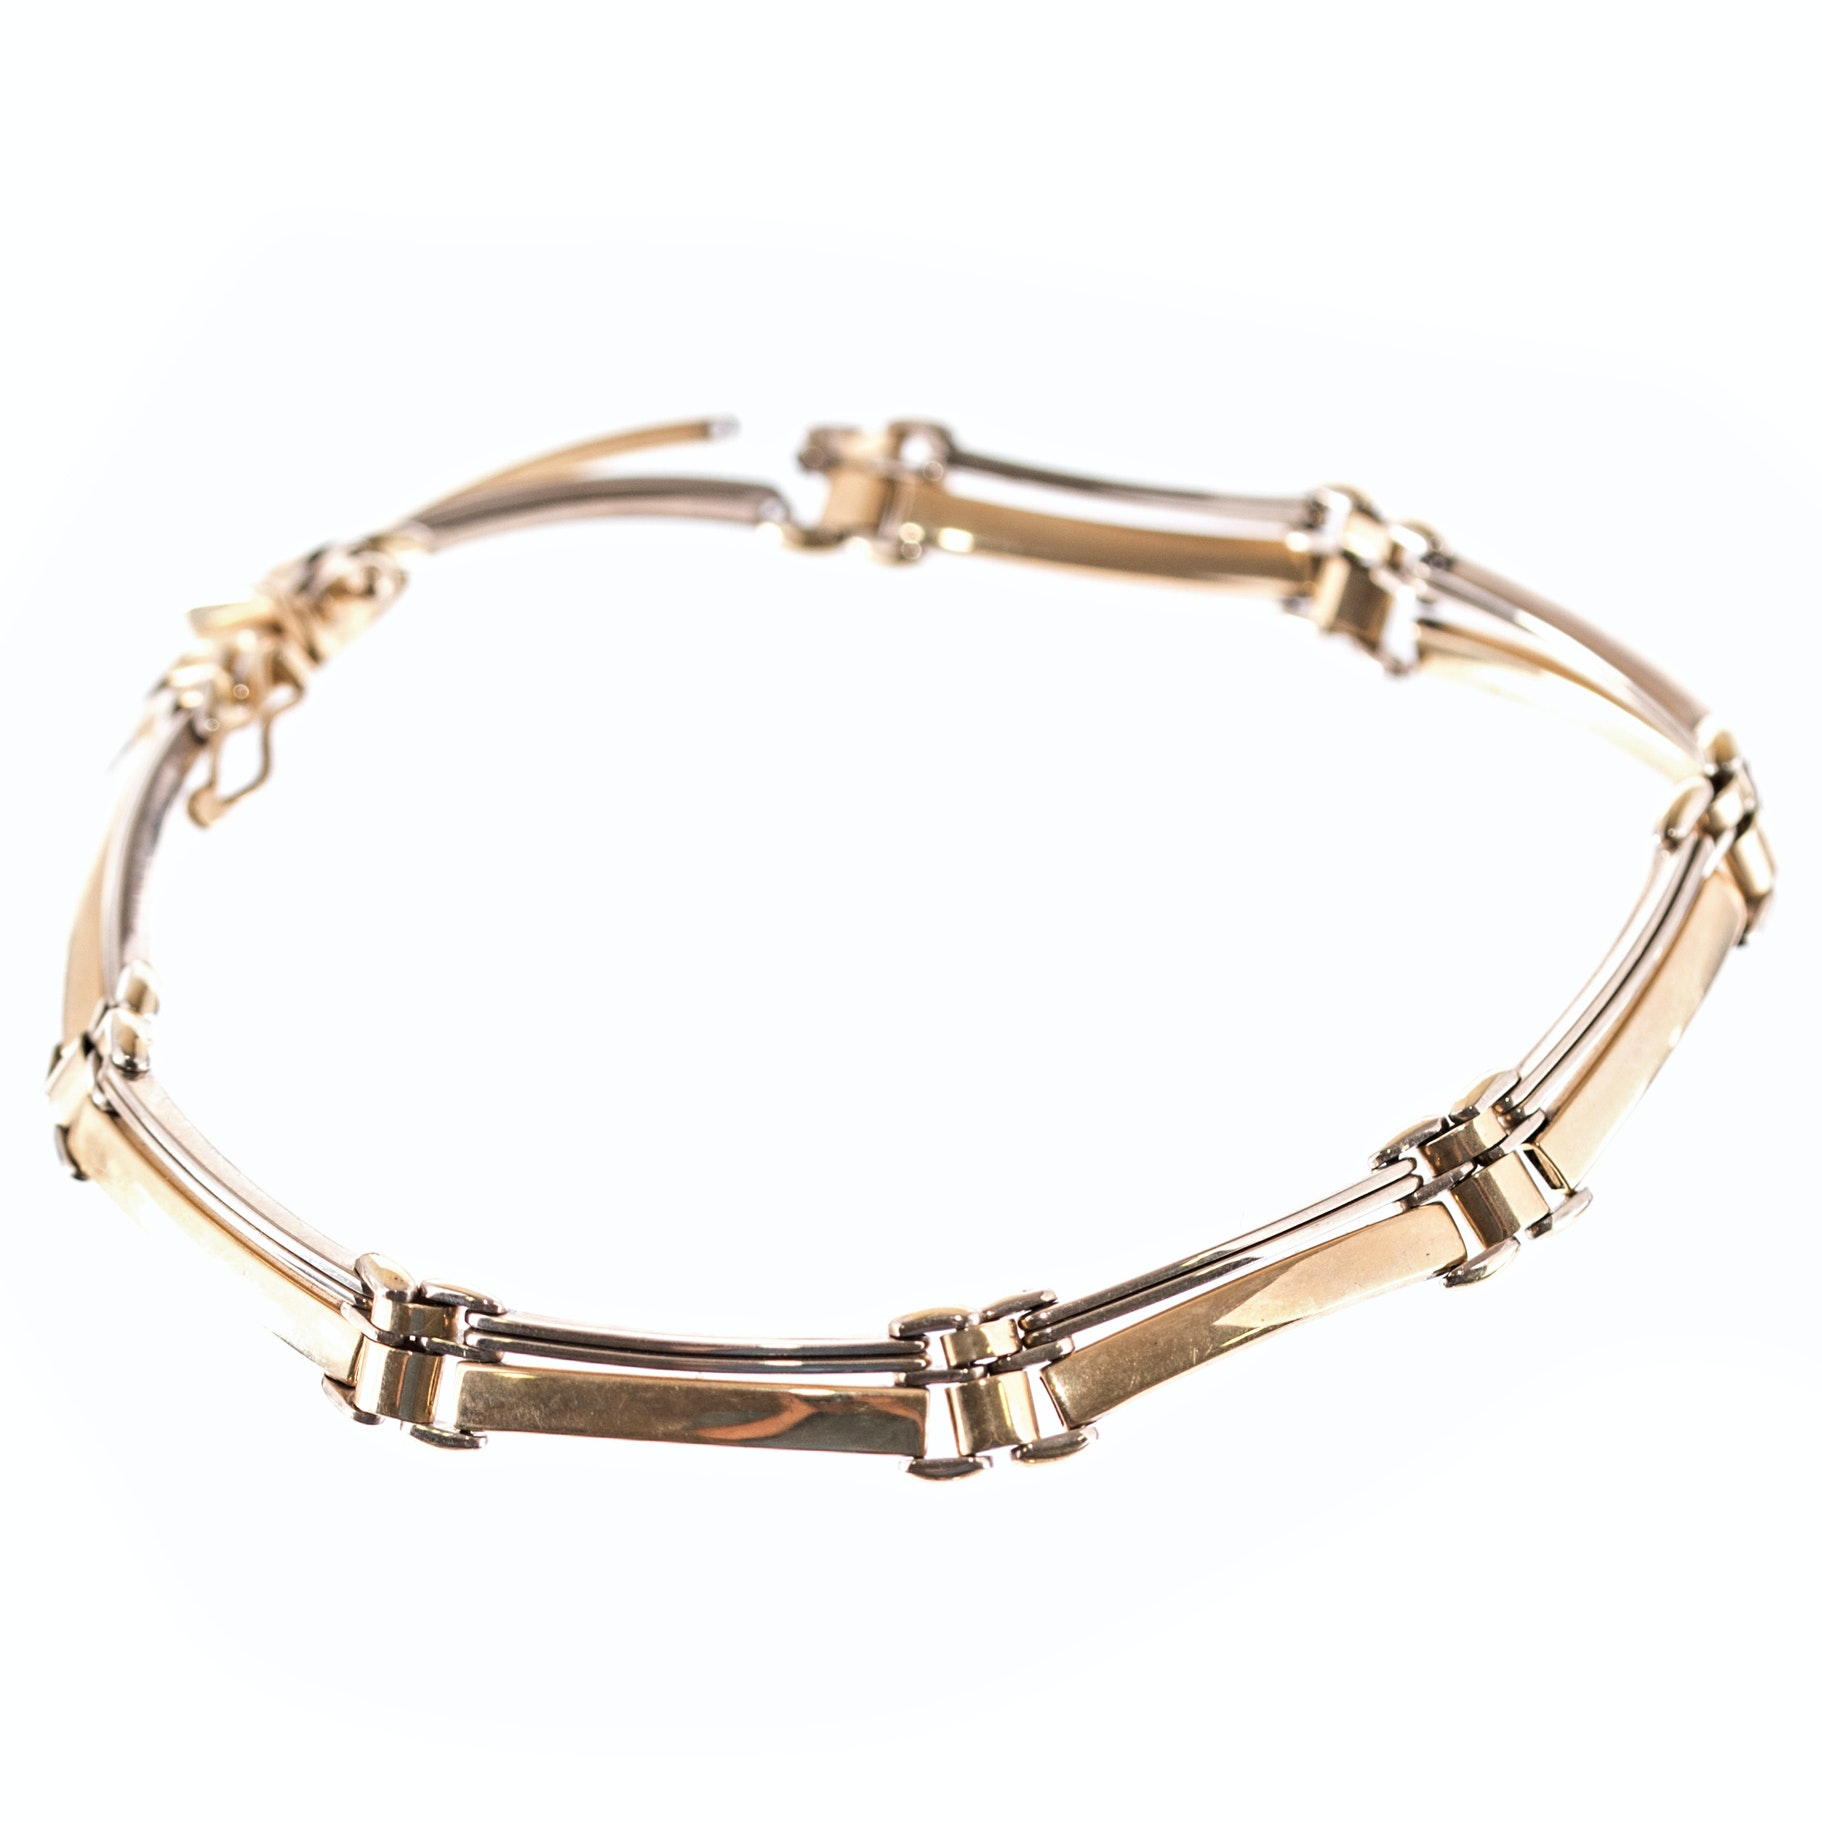 14K Yellow and White Gold Eight-Bar Link Bracelet